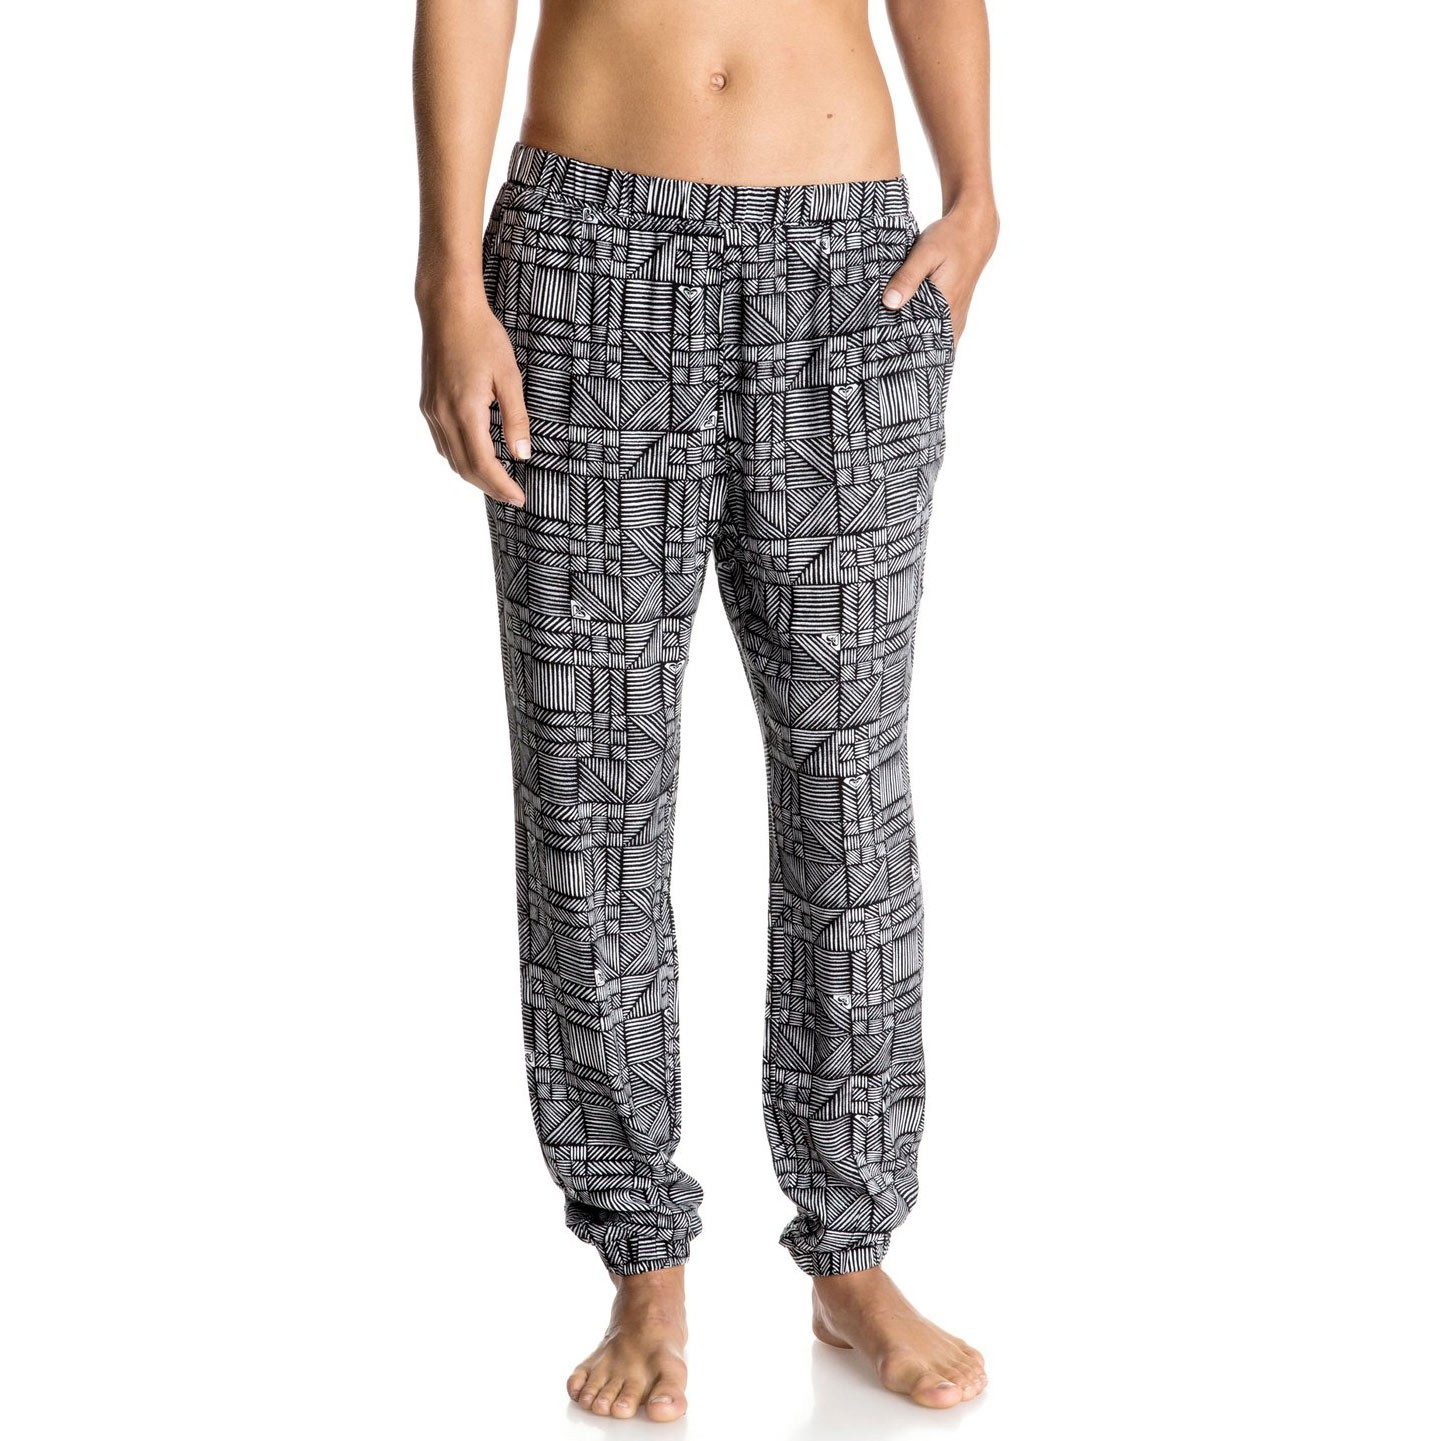 Kalhoty Roxy Easy Peasy Pant anthracite beachouse geo